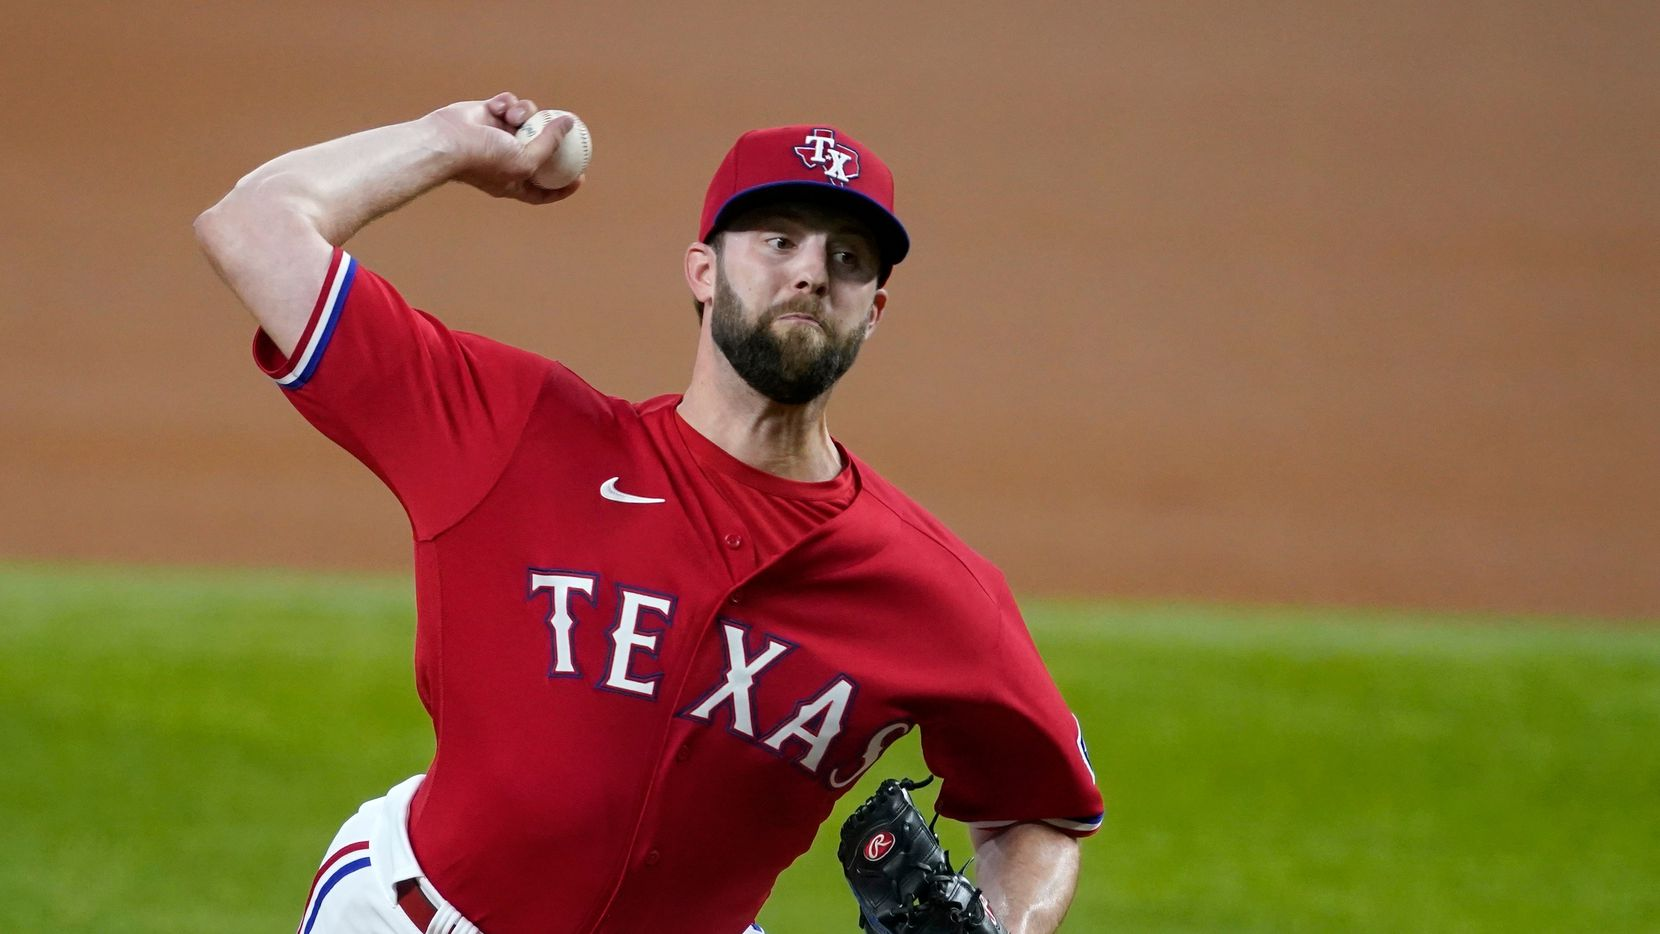 Texas Rangers starting pitcher Jordan Lyles throws to an Oakland Athletics batter during the first inning of a baseball game in Arlington, Texas, Friday, July 9, 2021.